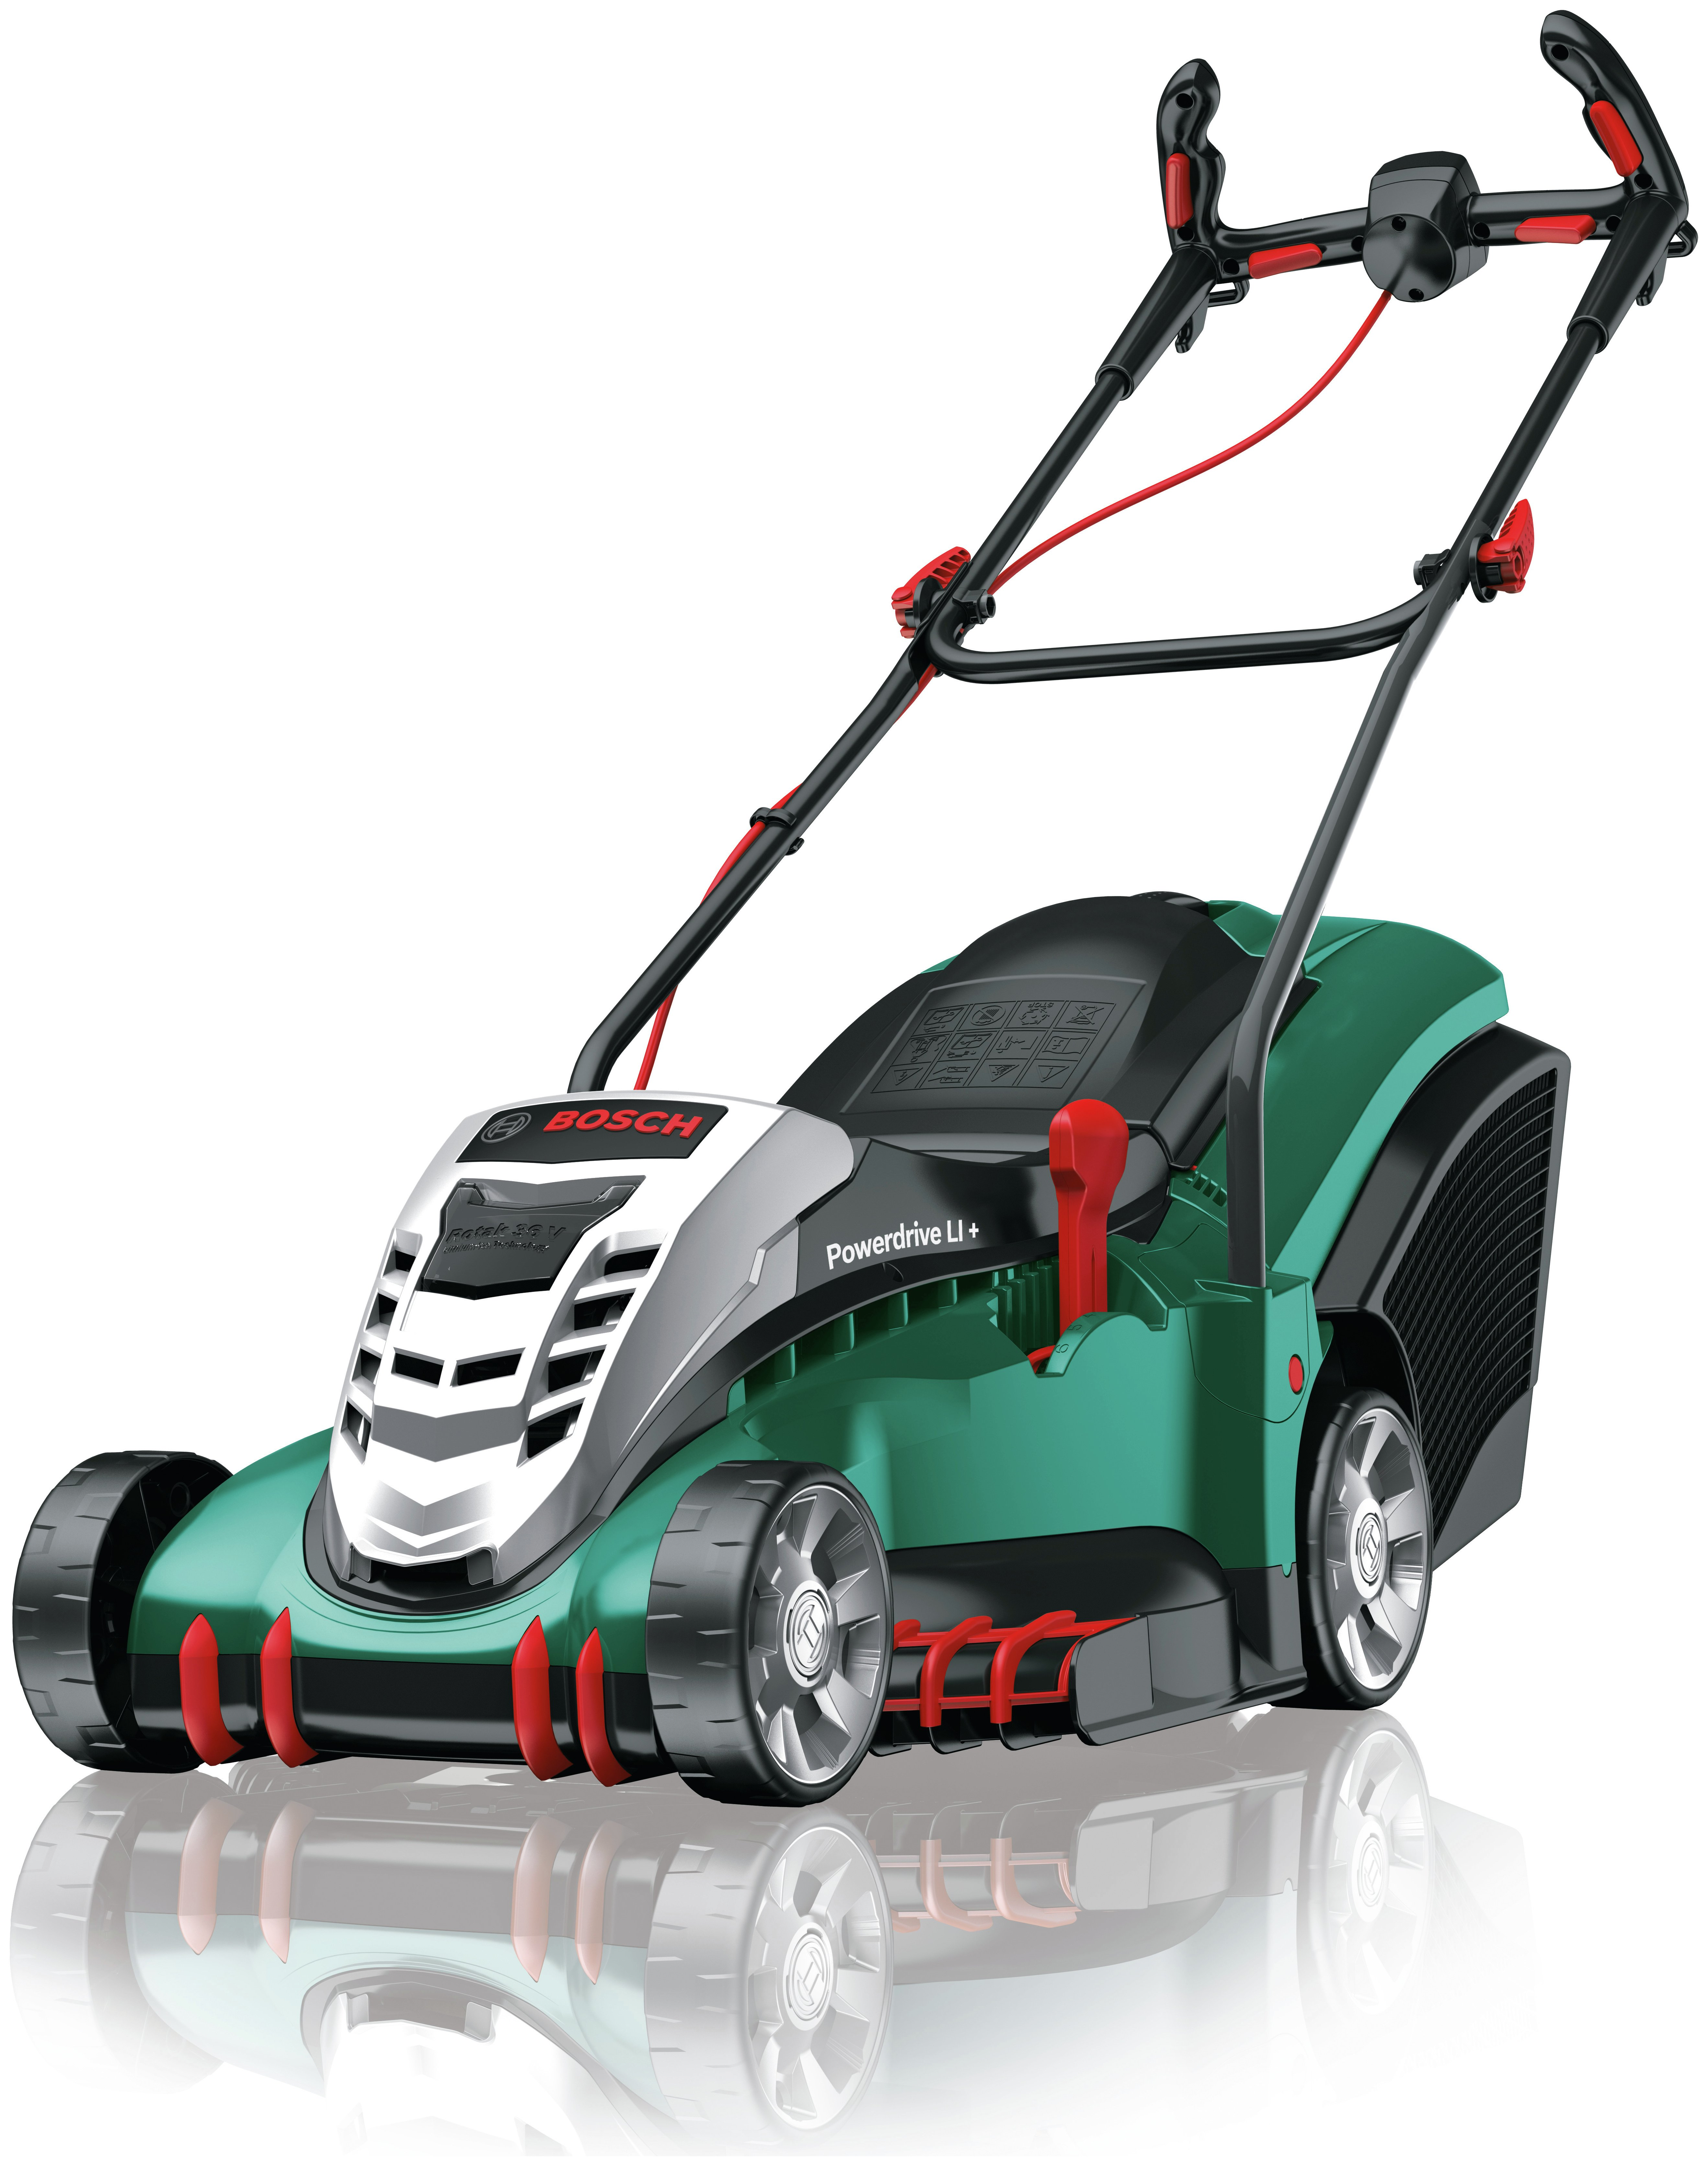 lawnmowers compare prices best price uk. Black Bedroom Furniture Sets. Home Design Ideas